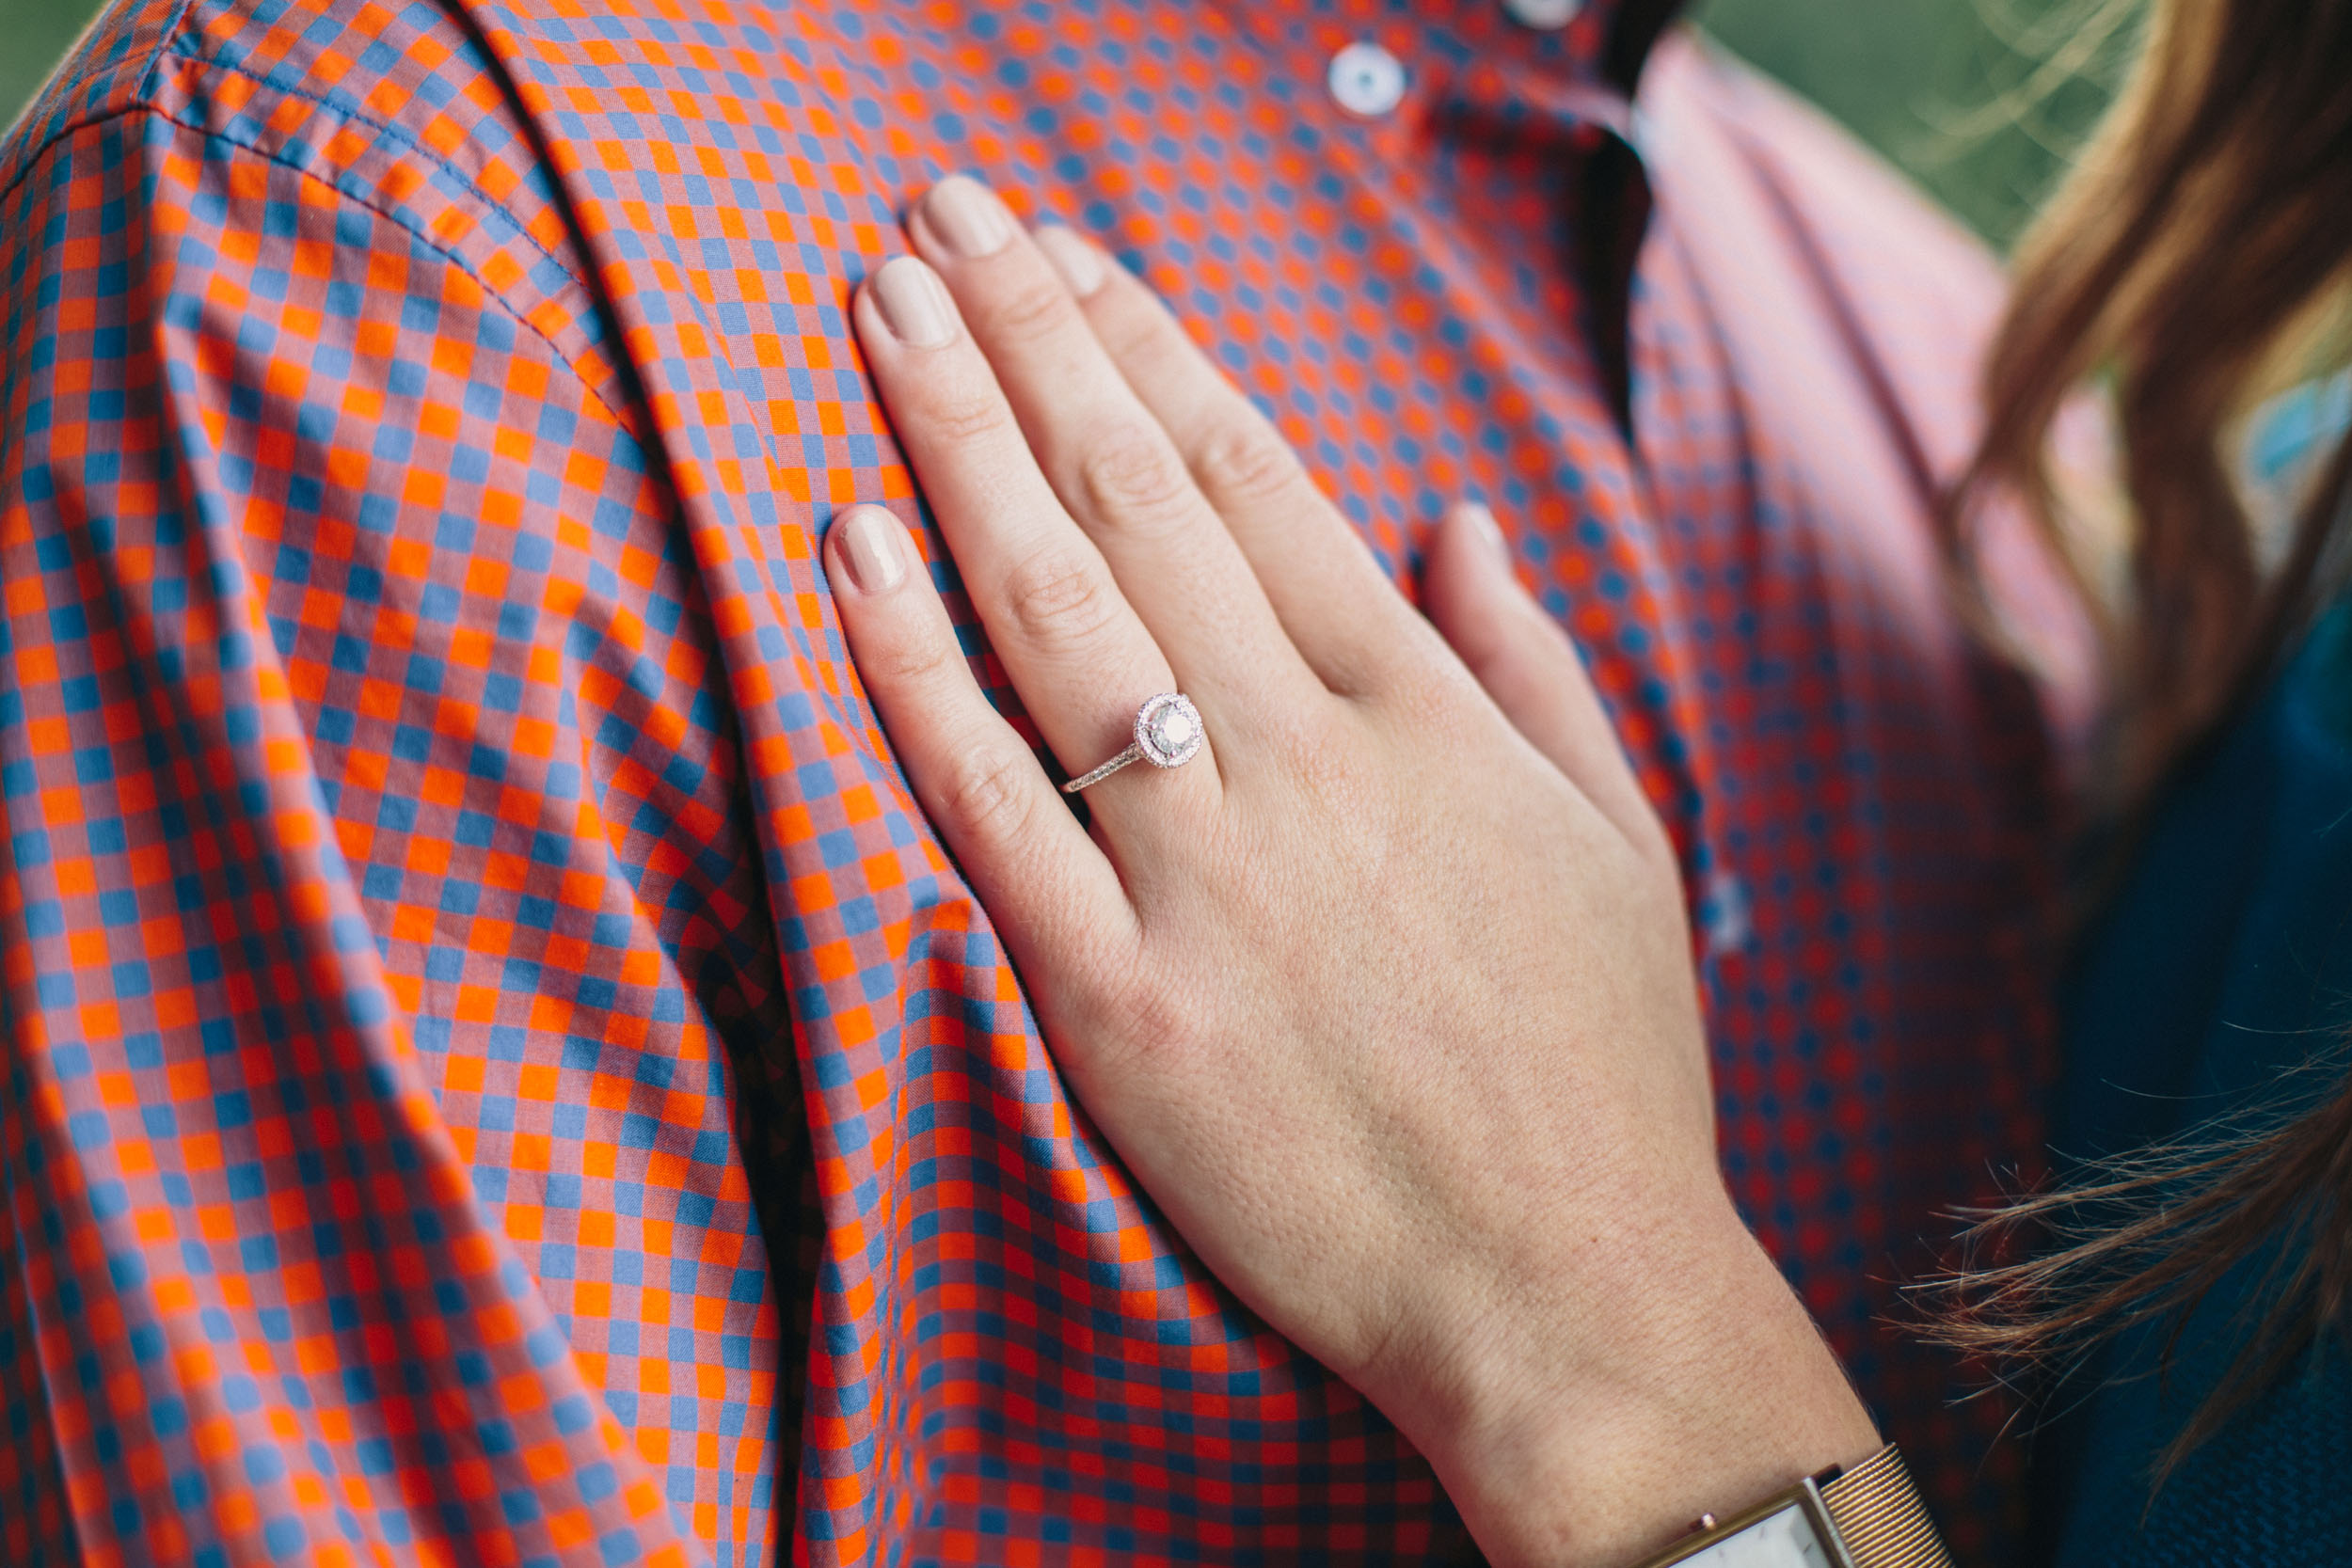 jimmy-rowalt-atlanta-engagement-photography-008.jpg